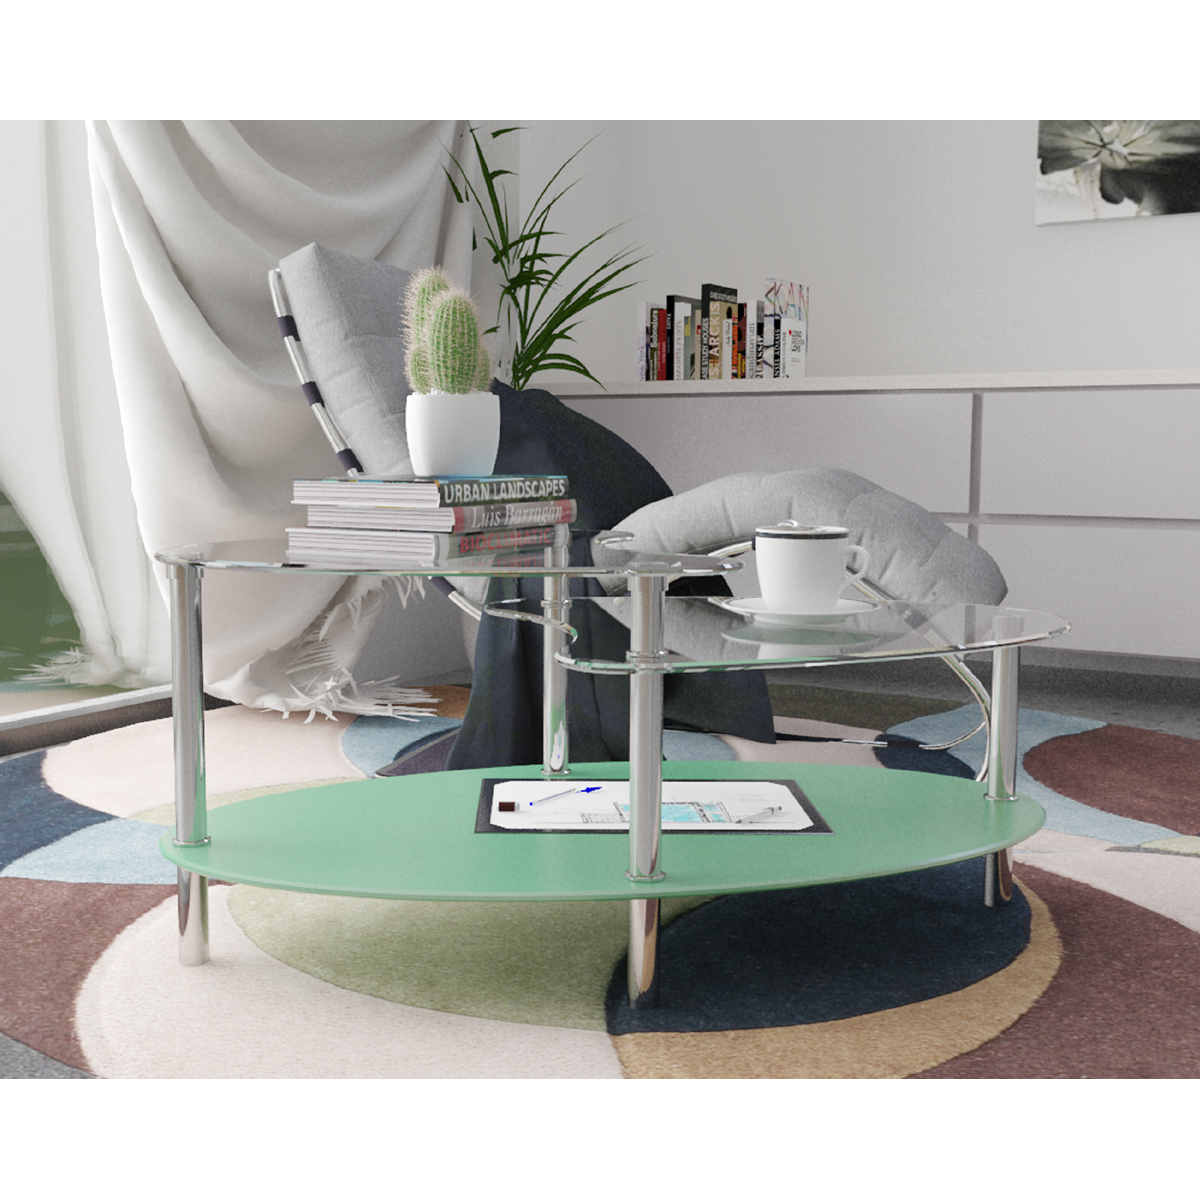 Ryan Rove Cleveland Oval Glass Coffee Table - Modern Home Decor with Black Mesh Magazine Storage Rack - Furniture for Living Roo